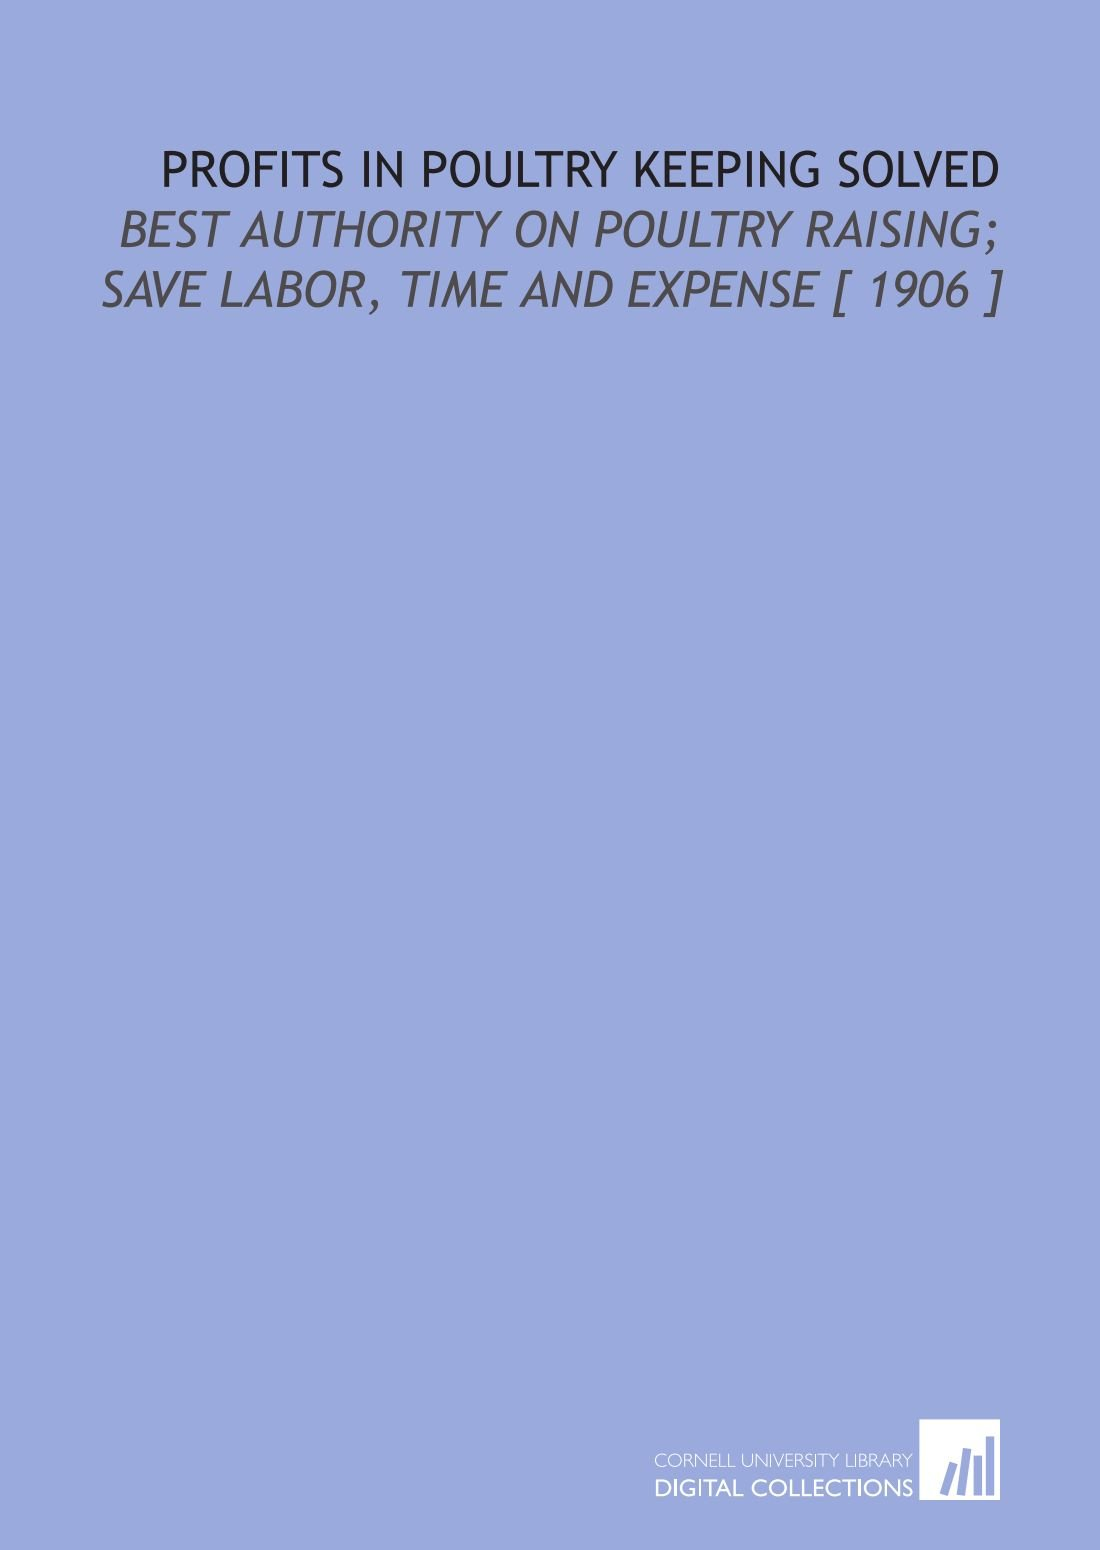 Read Online Profits in Poultry Keeping Solved: Best Authority on Poultry Raising; Save Labor, Time and Expense [ 1906 ] PDF ePub fb2 ebook